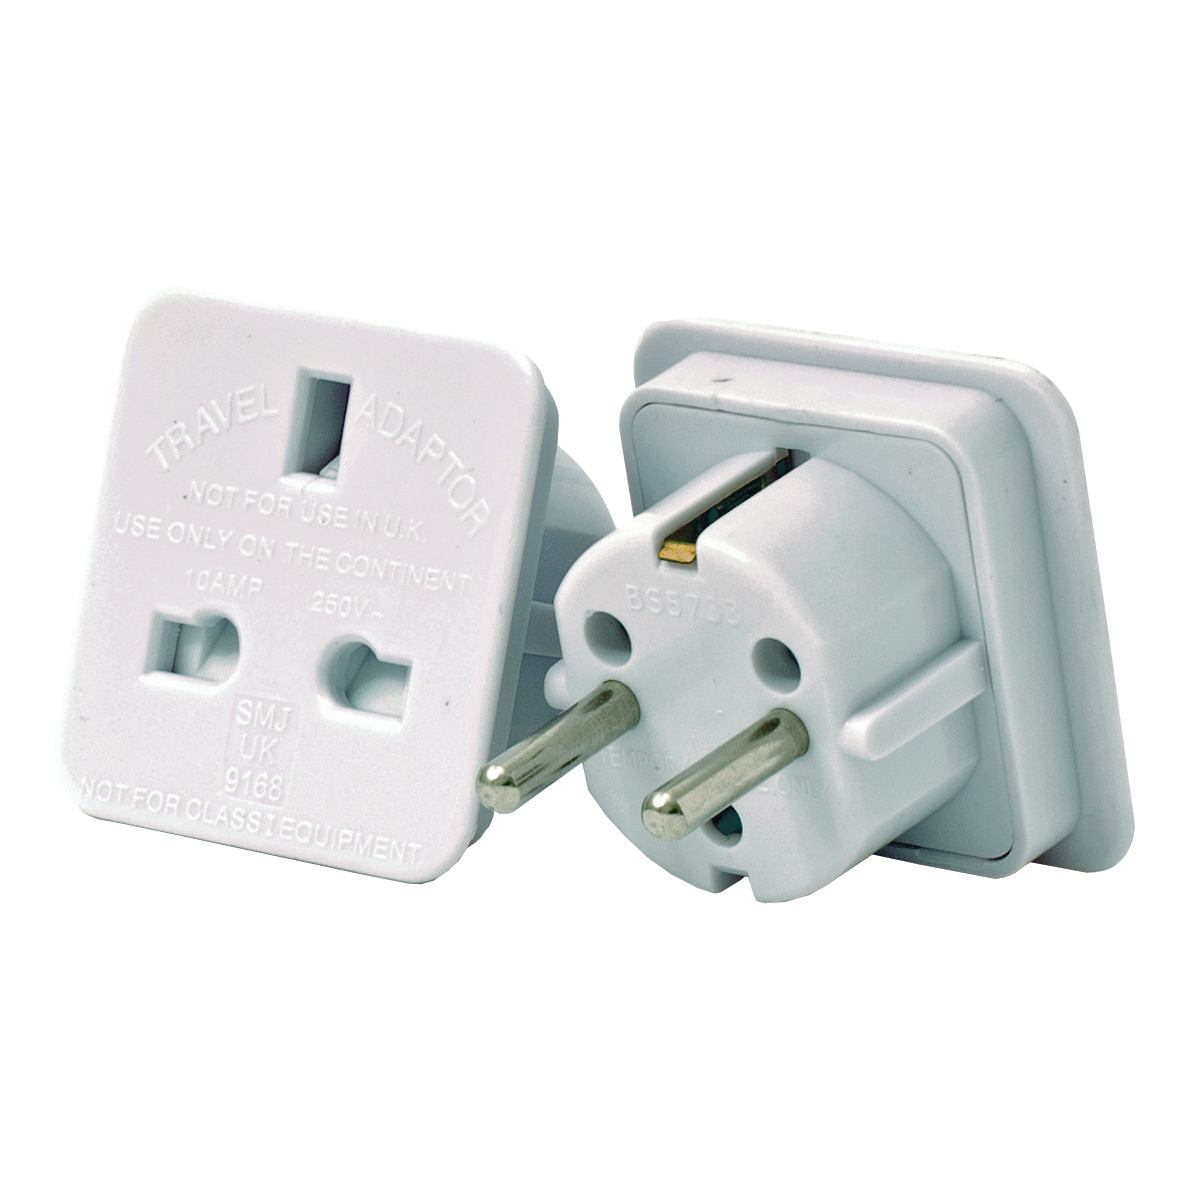 UK to European Travel Adaptor [Pack 2]